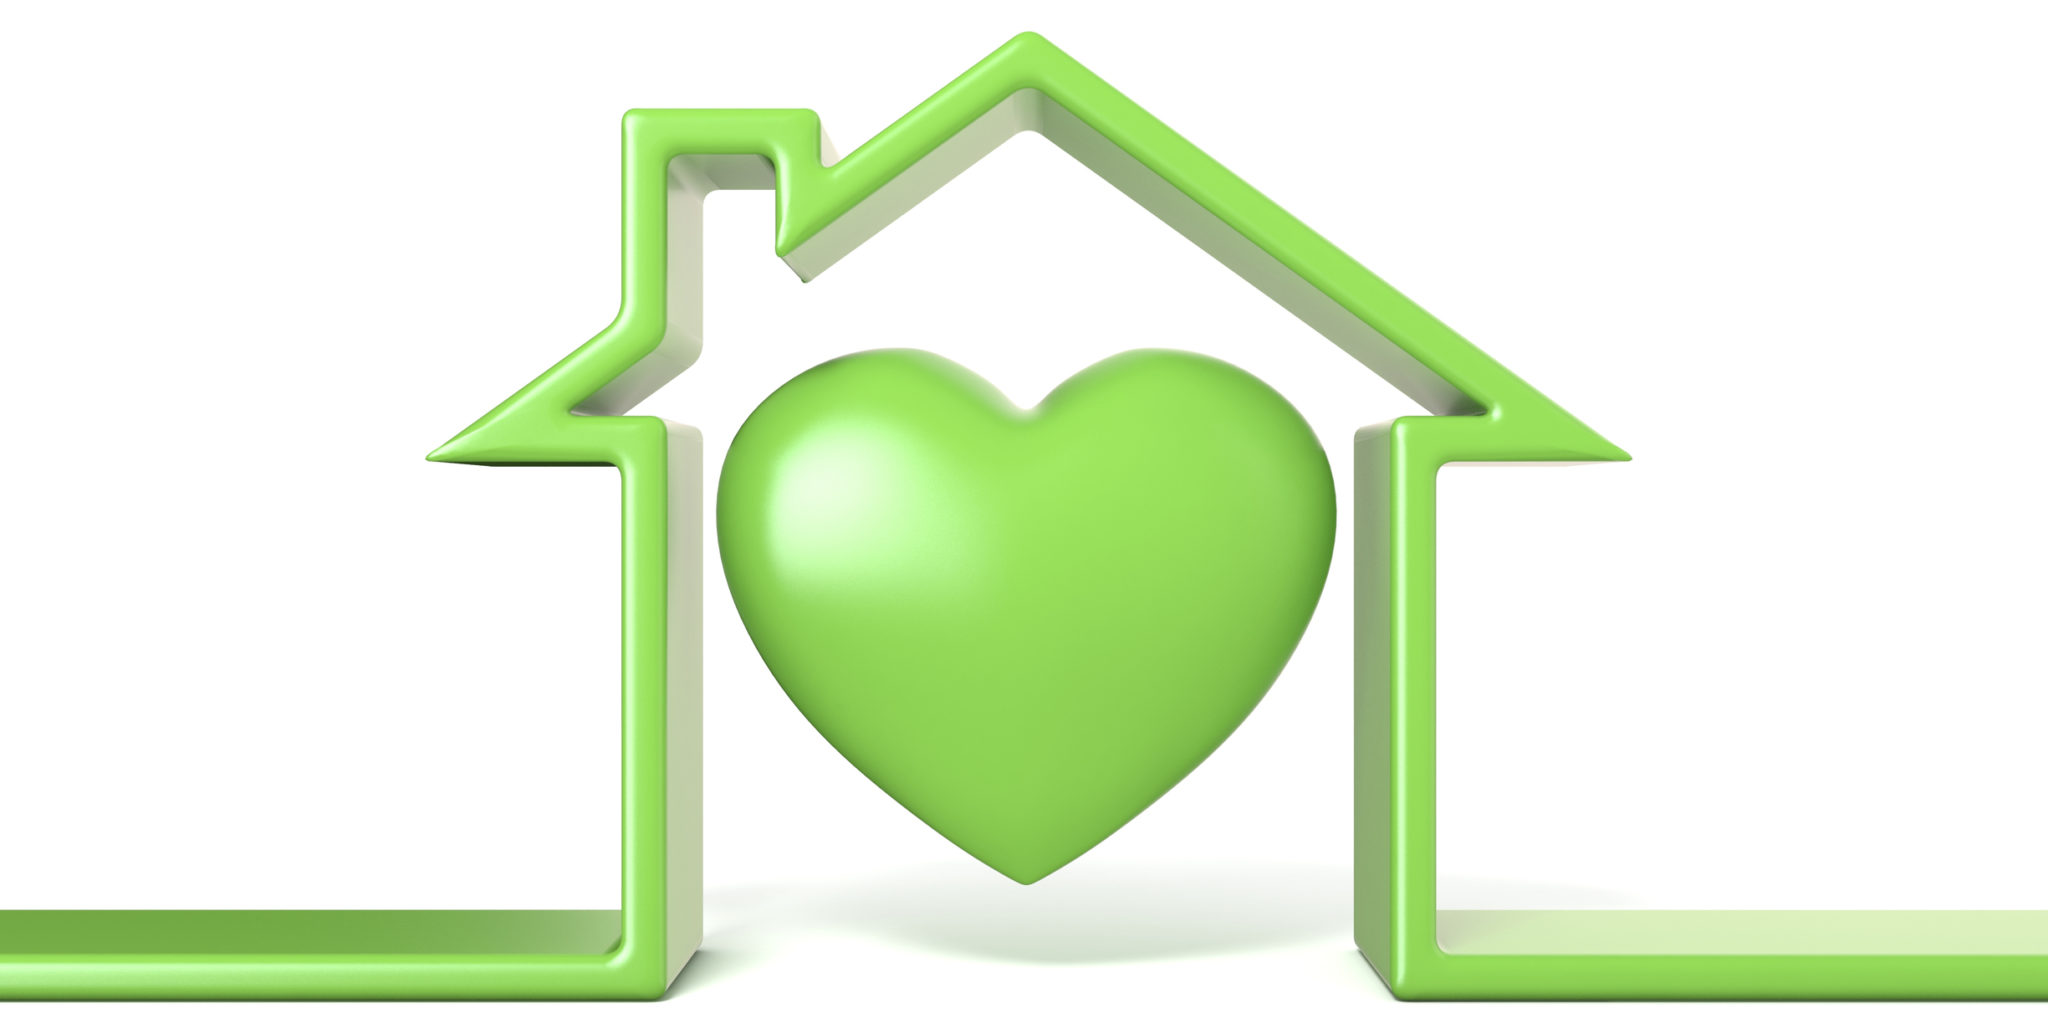 Heart in house made of green line 3D render illustration isolated on white background